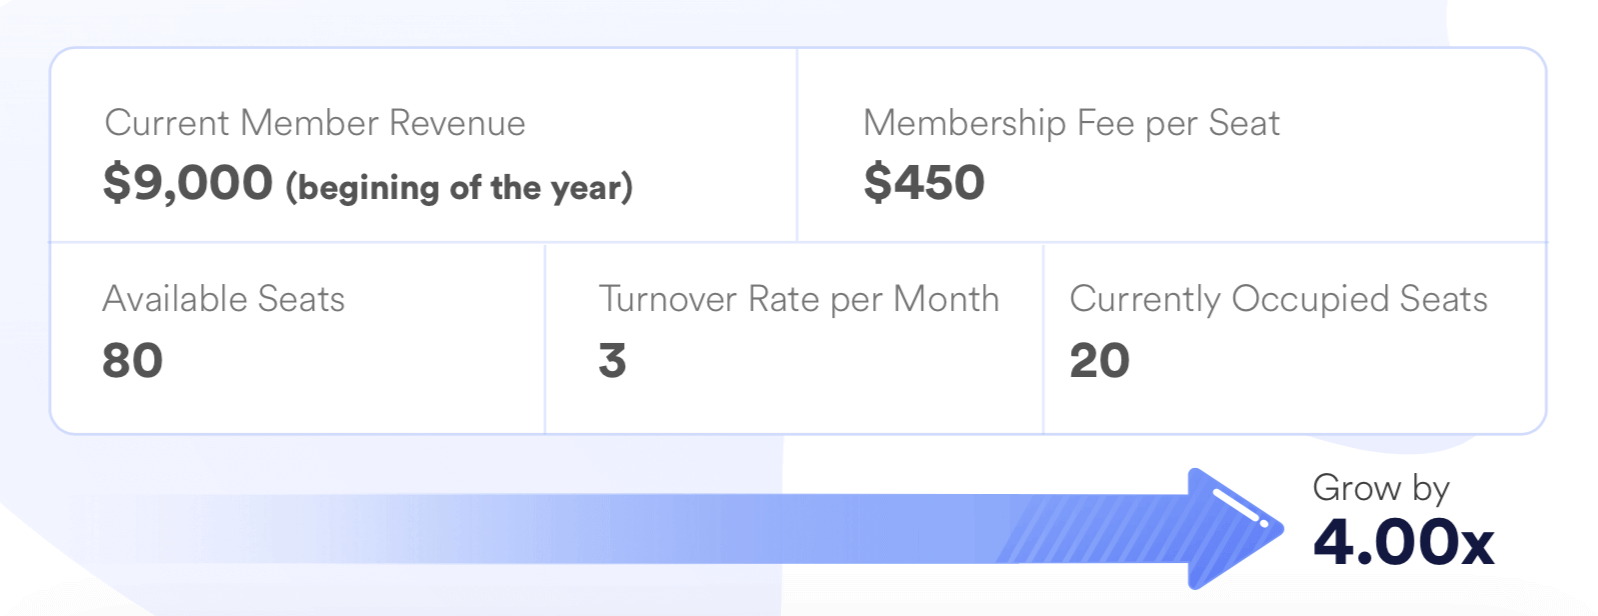 Preview of our coworking revenue forecast tool